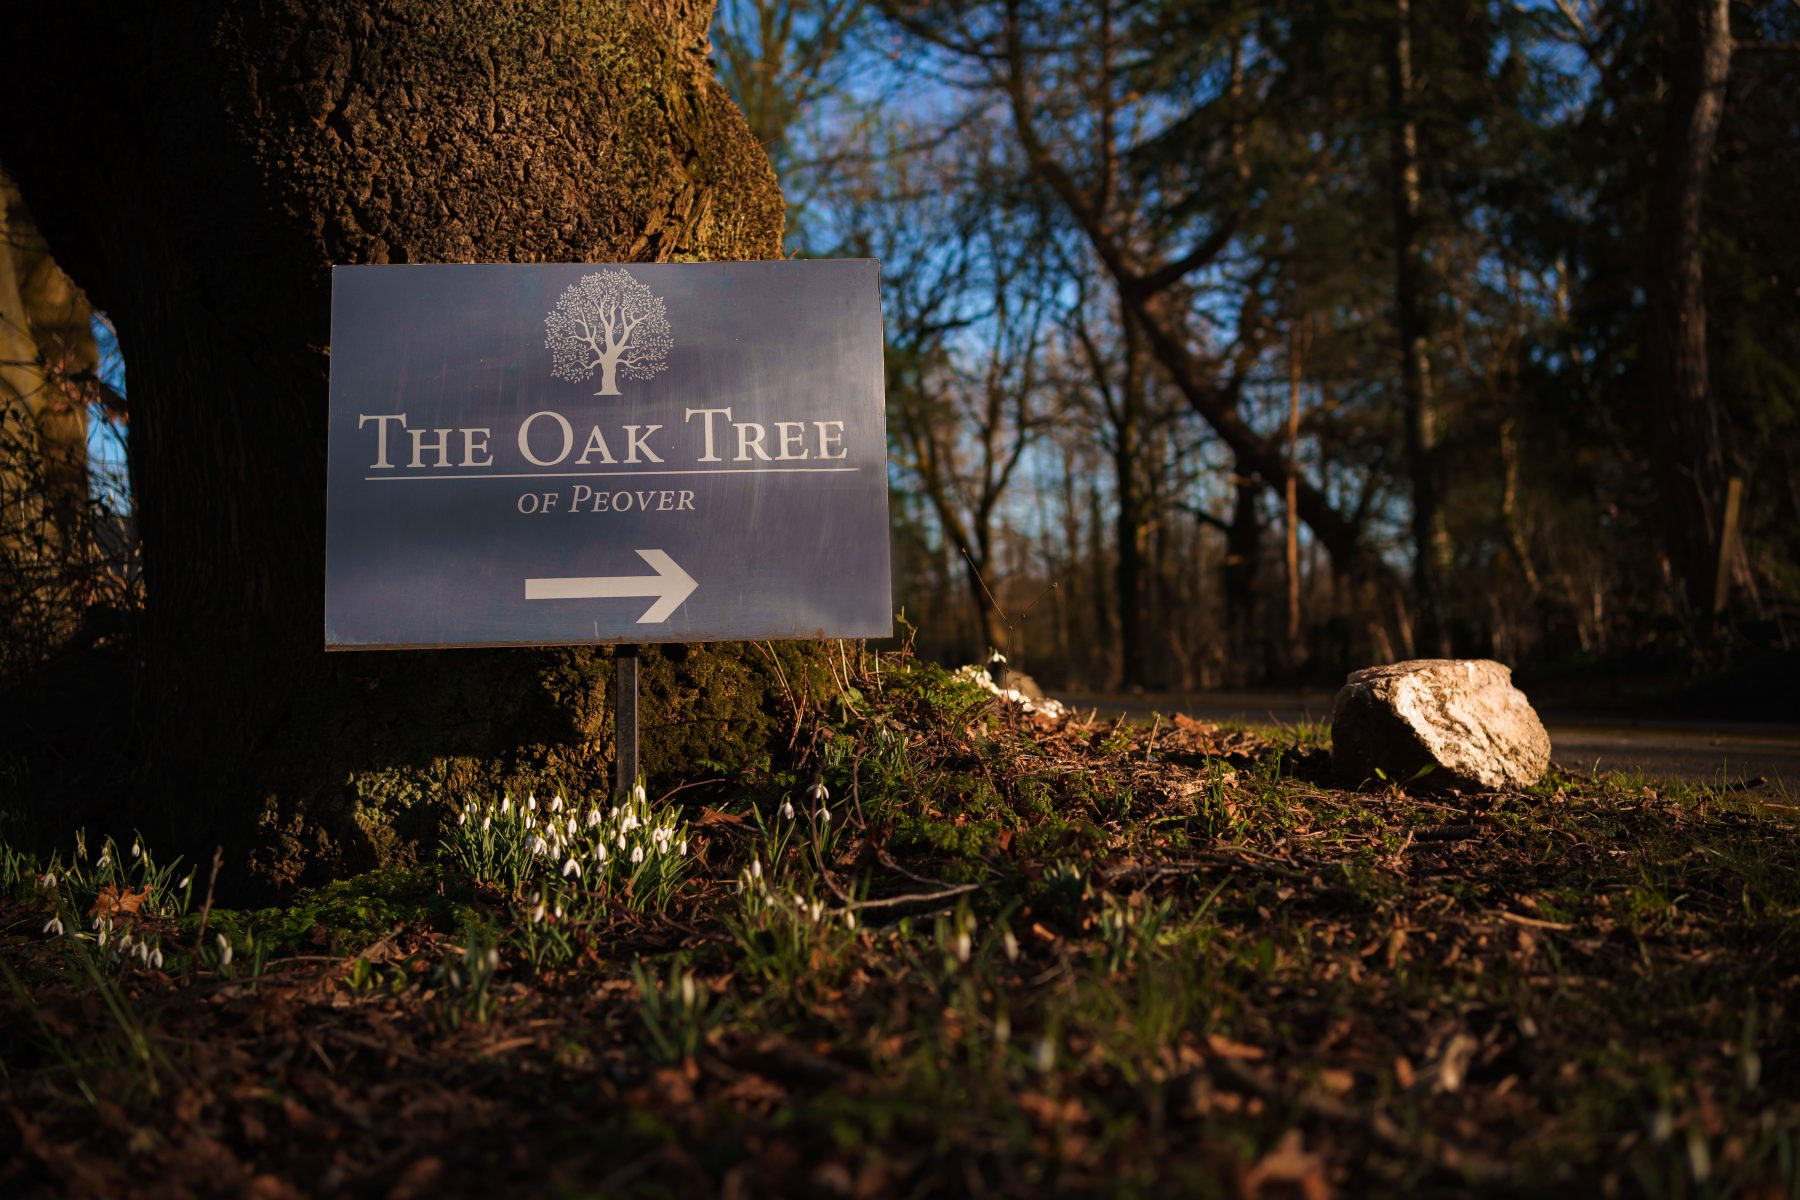 The sign at the driveway at The Oak Tree of Peover